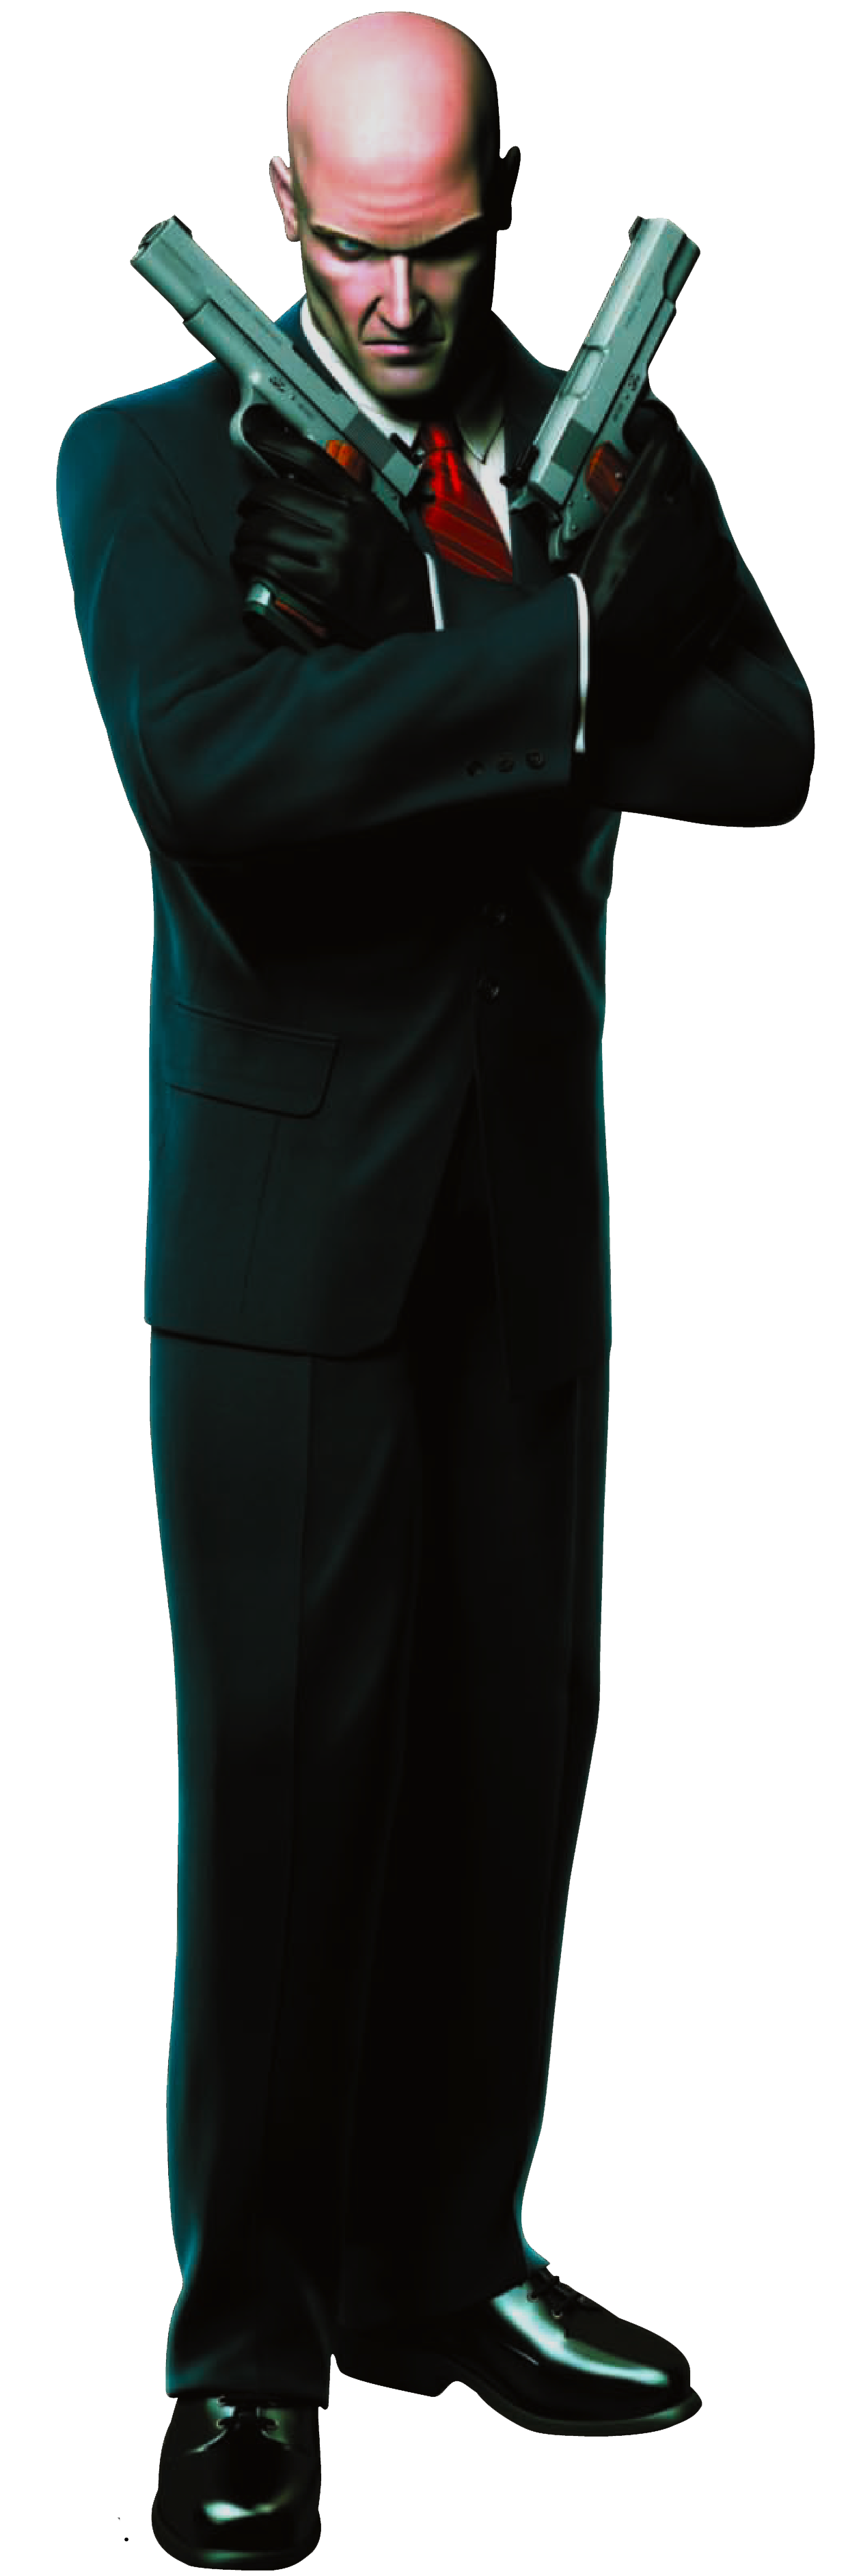 Hitman PNG File - Hitman PNG